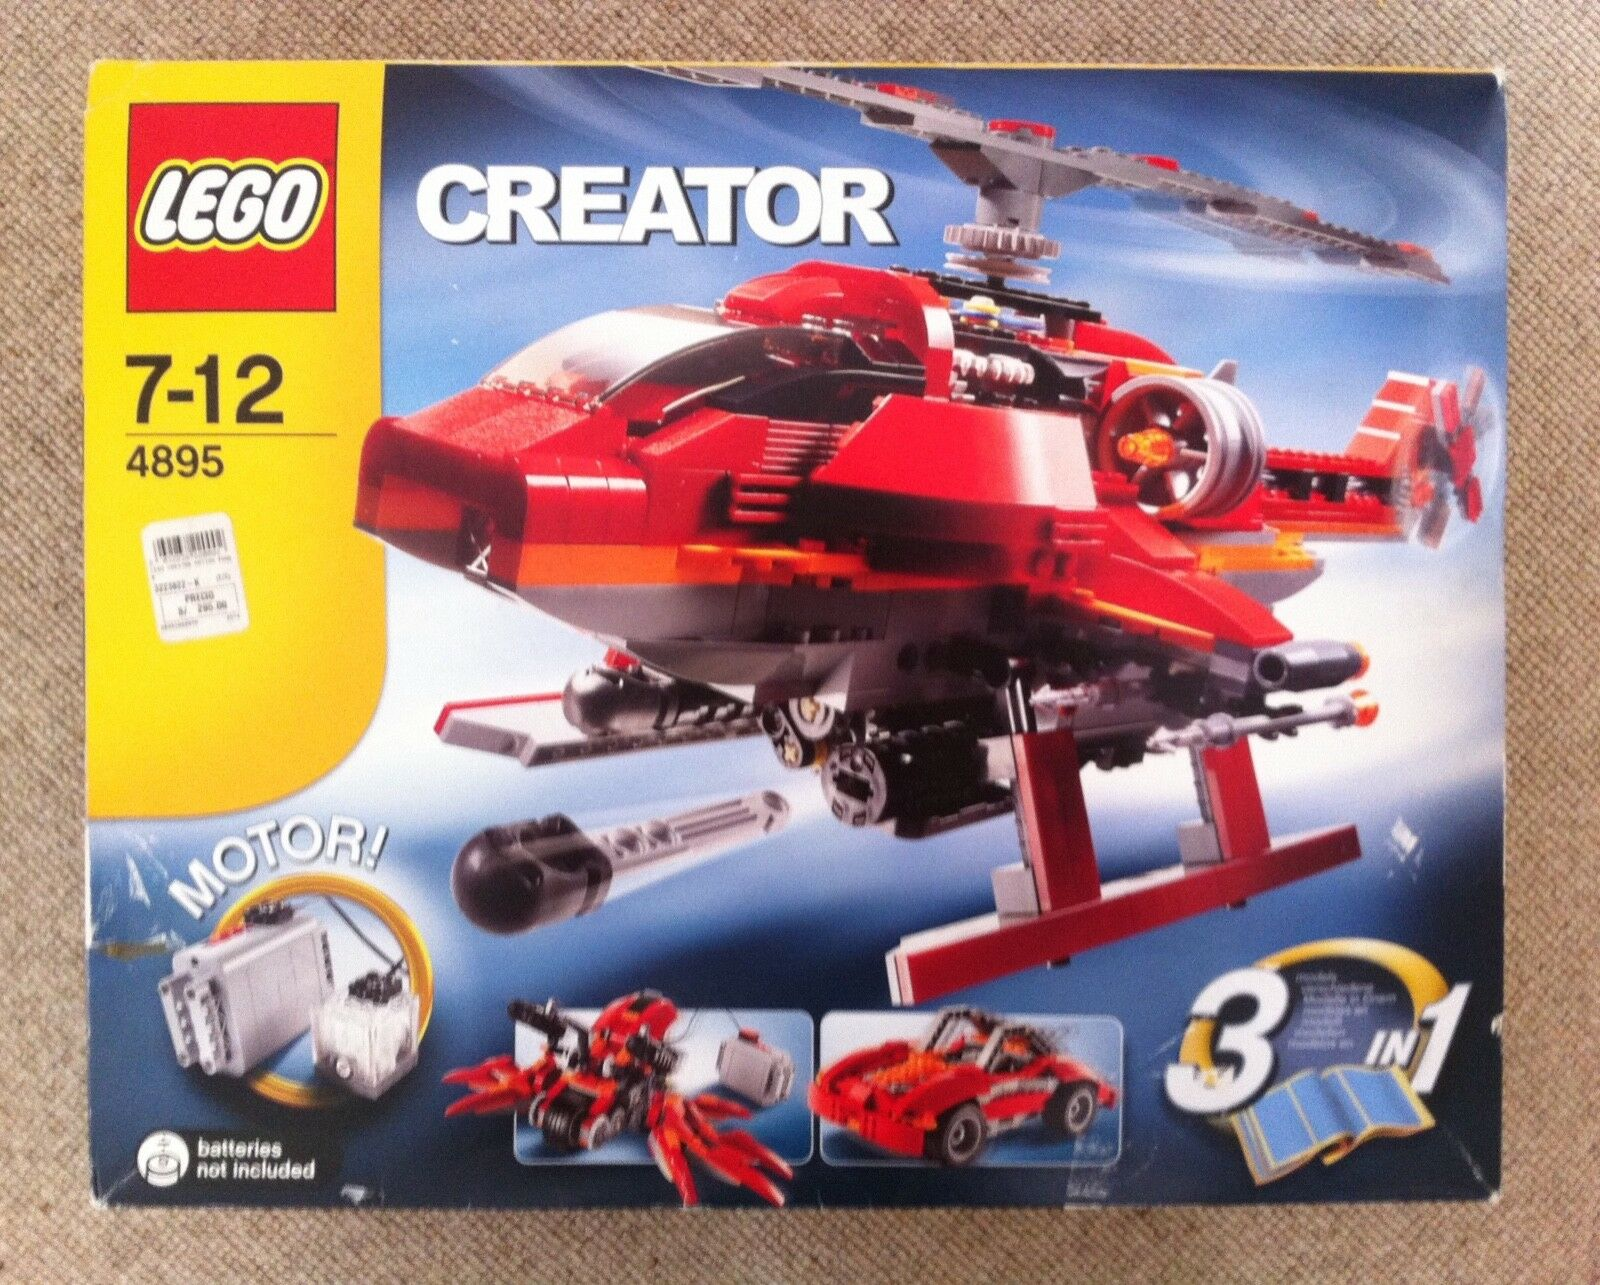 Lego Creator 4895 3-in-1 3-in-1 3-in-1 -Motorized helicopter gunship car and spider car 3883c5